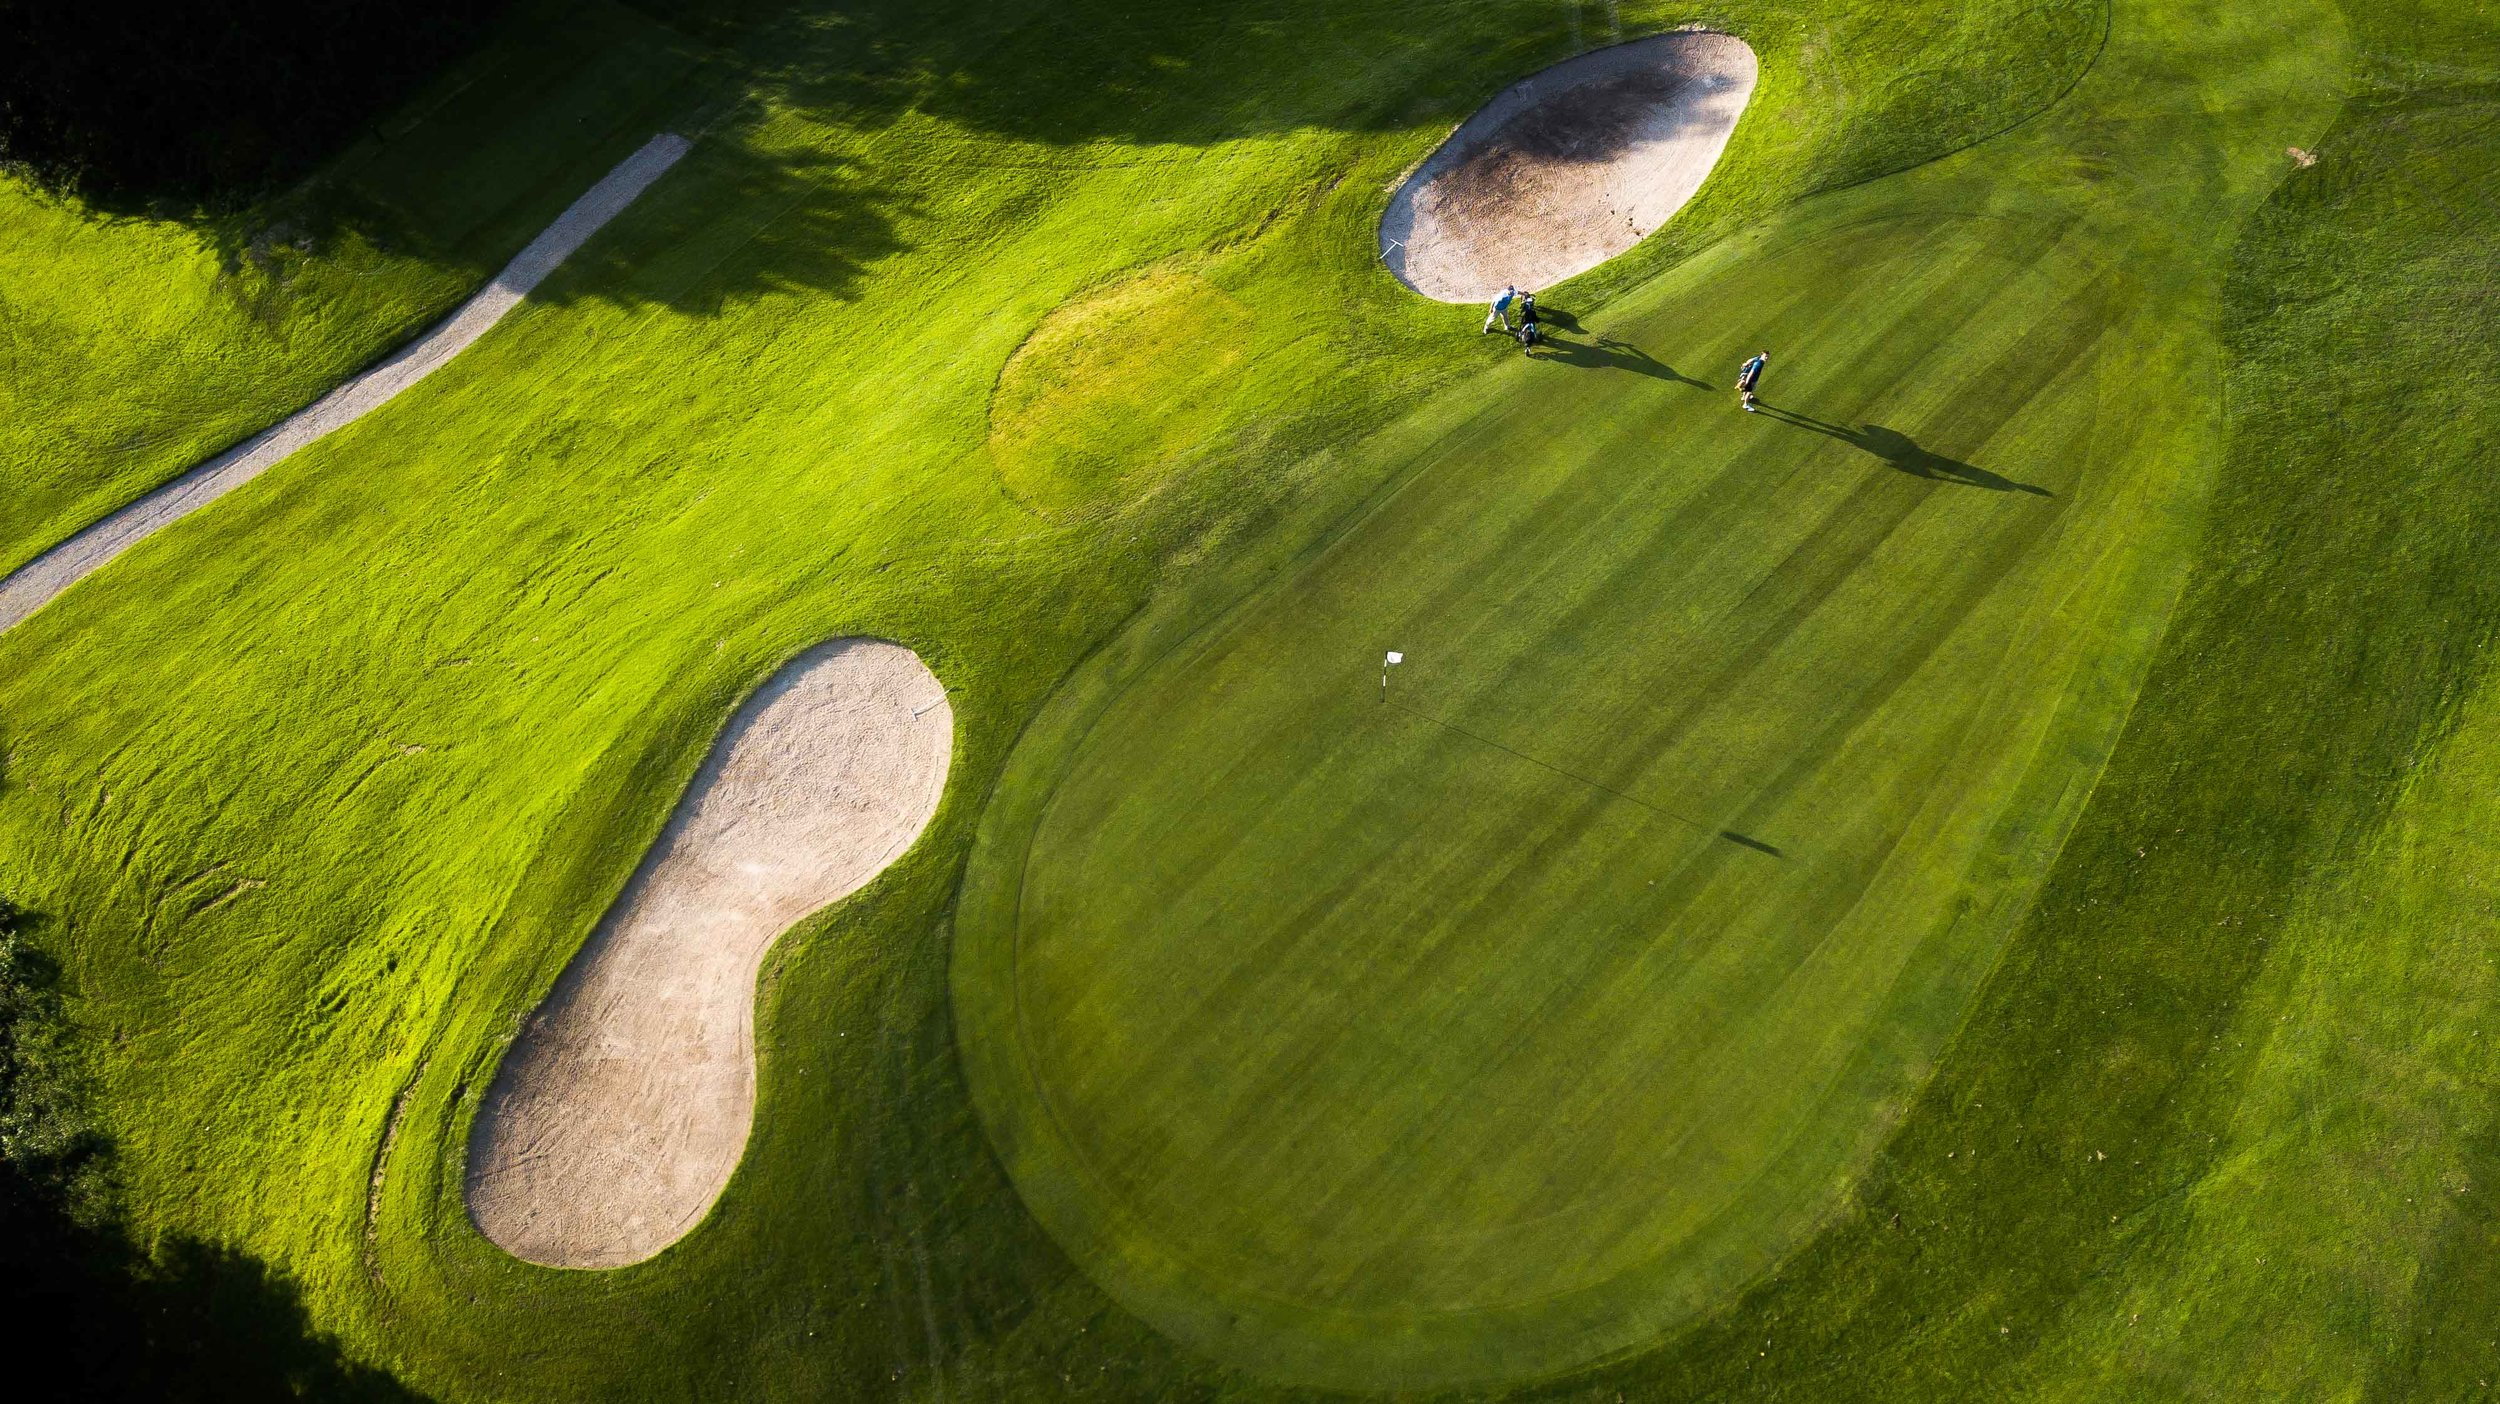 The 9th hole at Murrasyhall was the scene of the team speed golf competition.